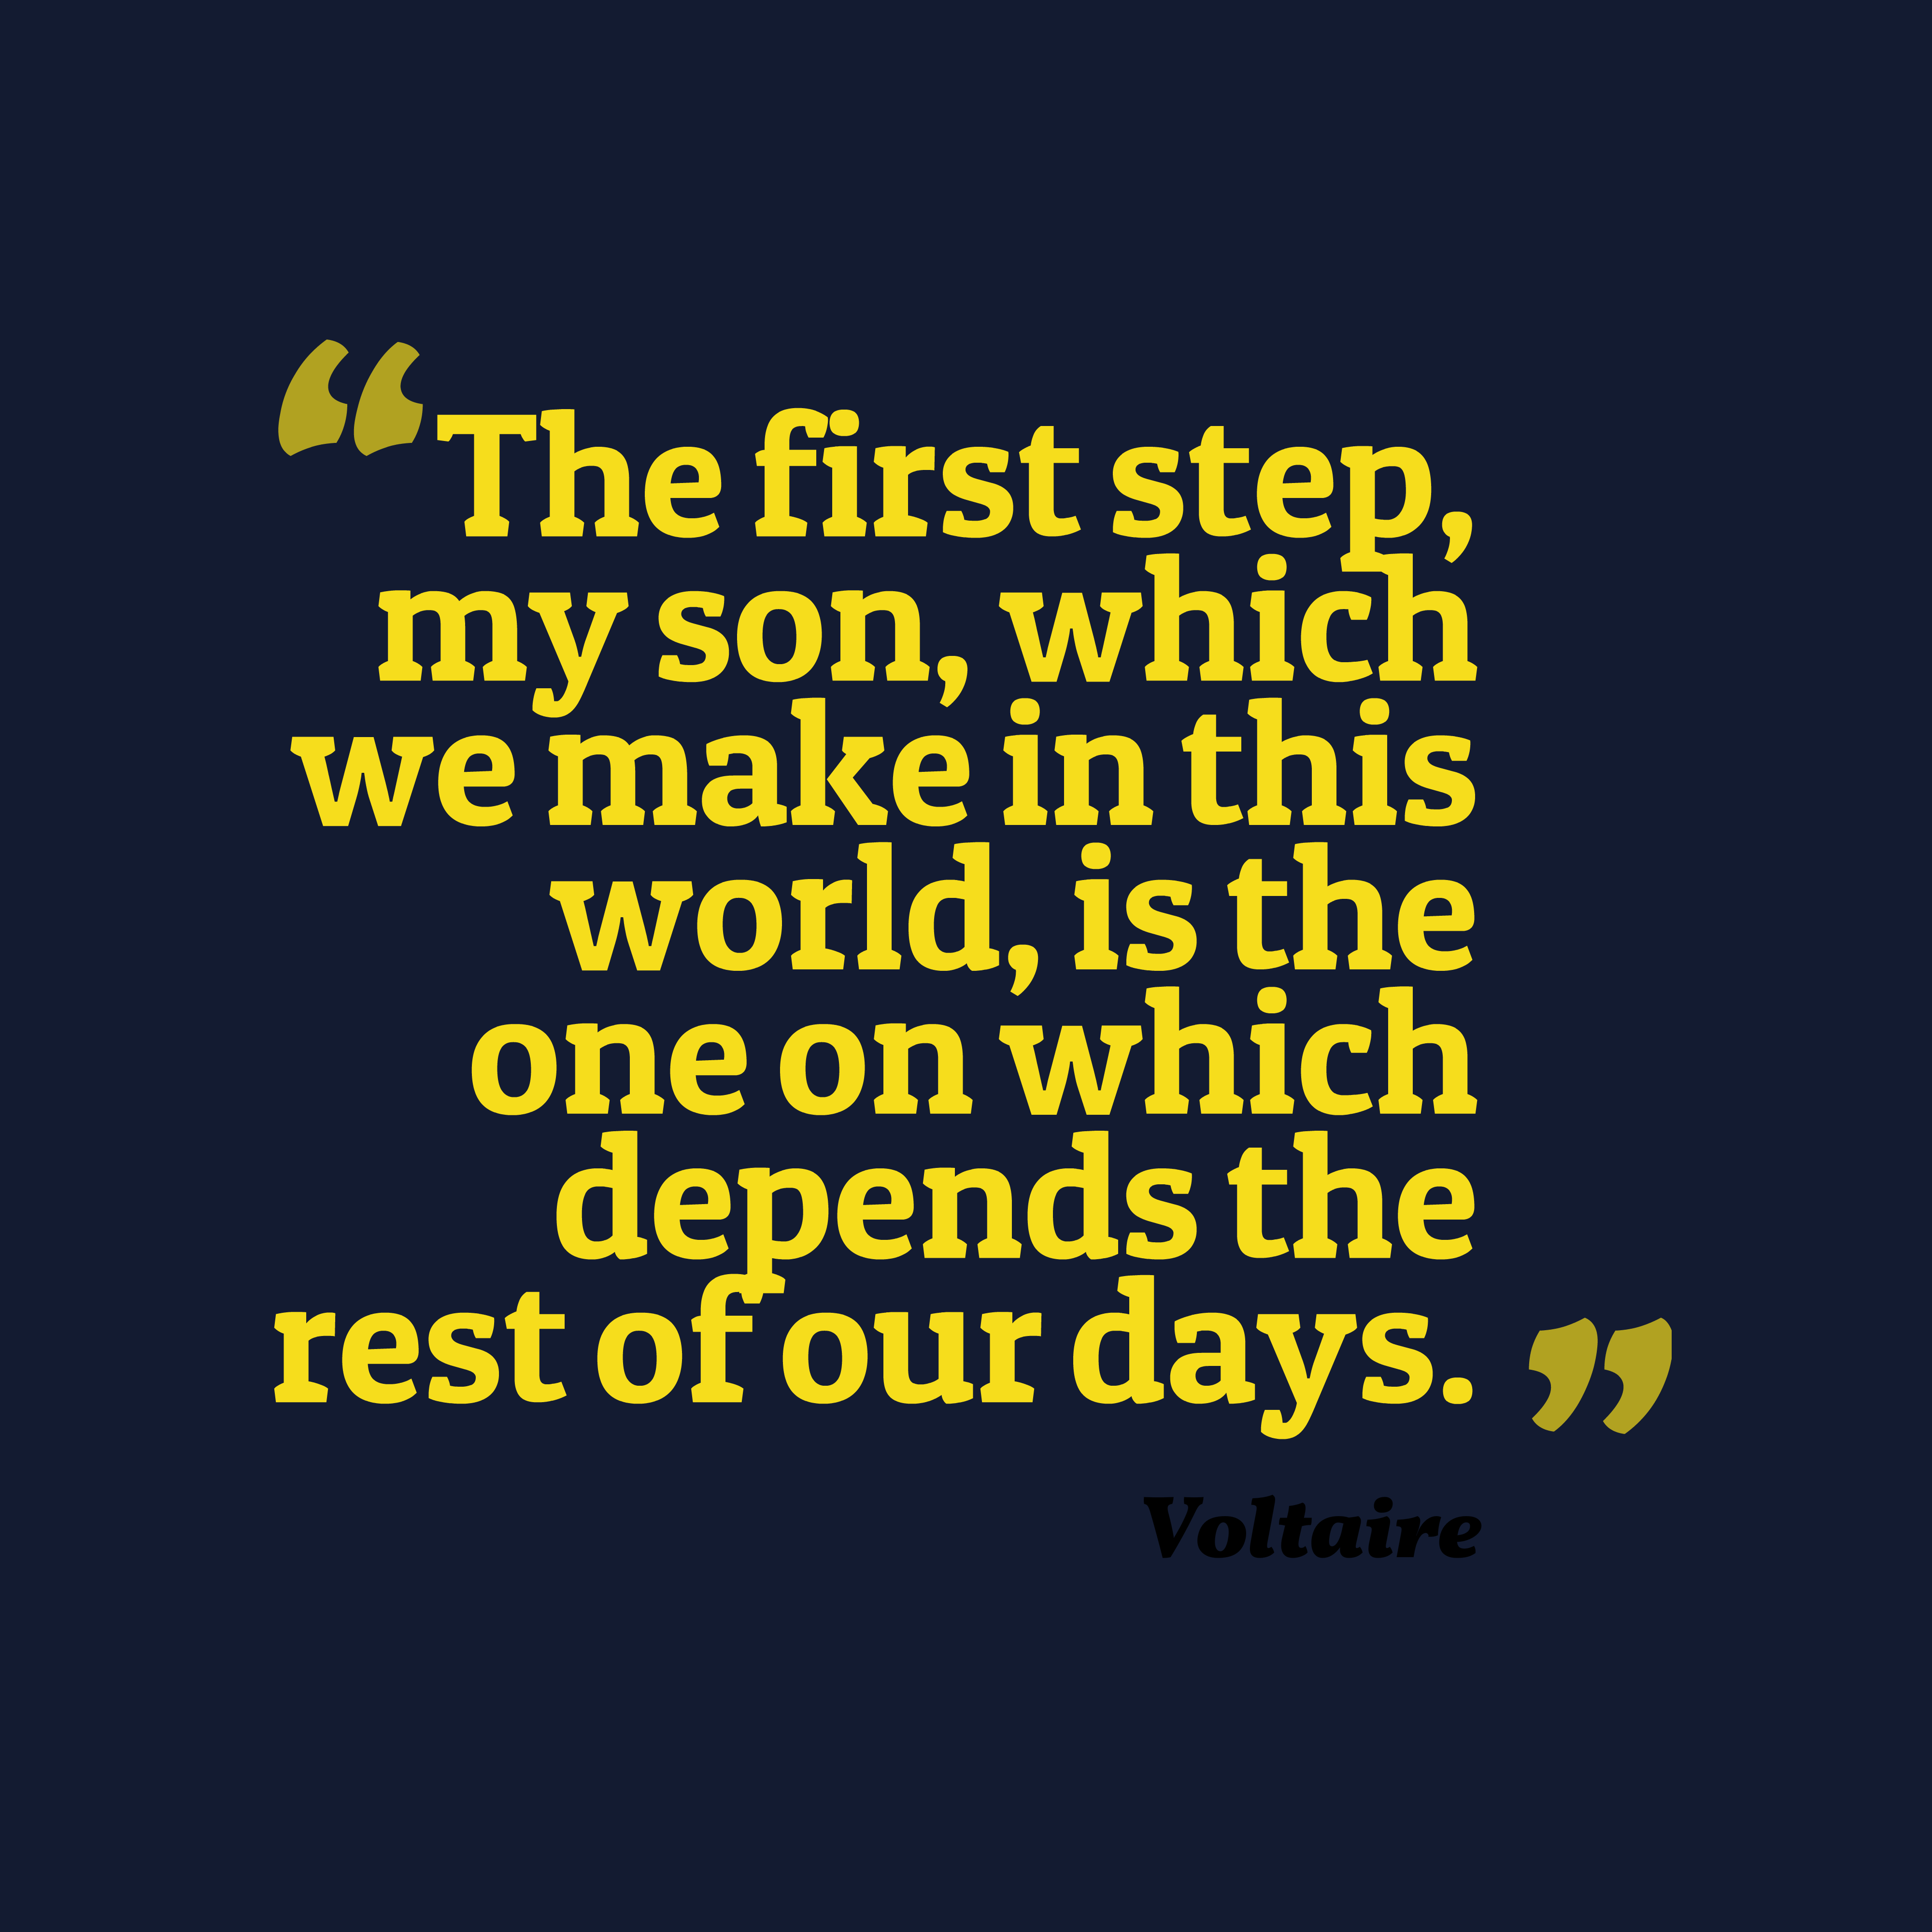 Quotes image of The first step, my son, which we make in this world, is the one on which depends the rest of our days.